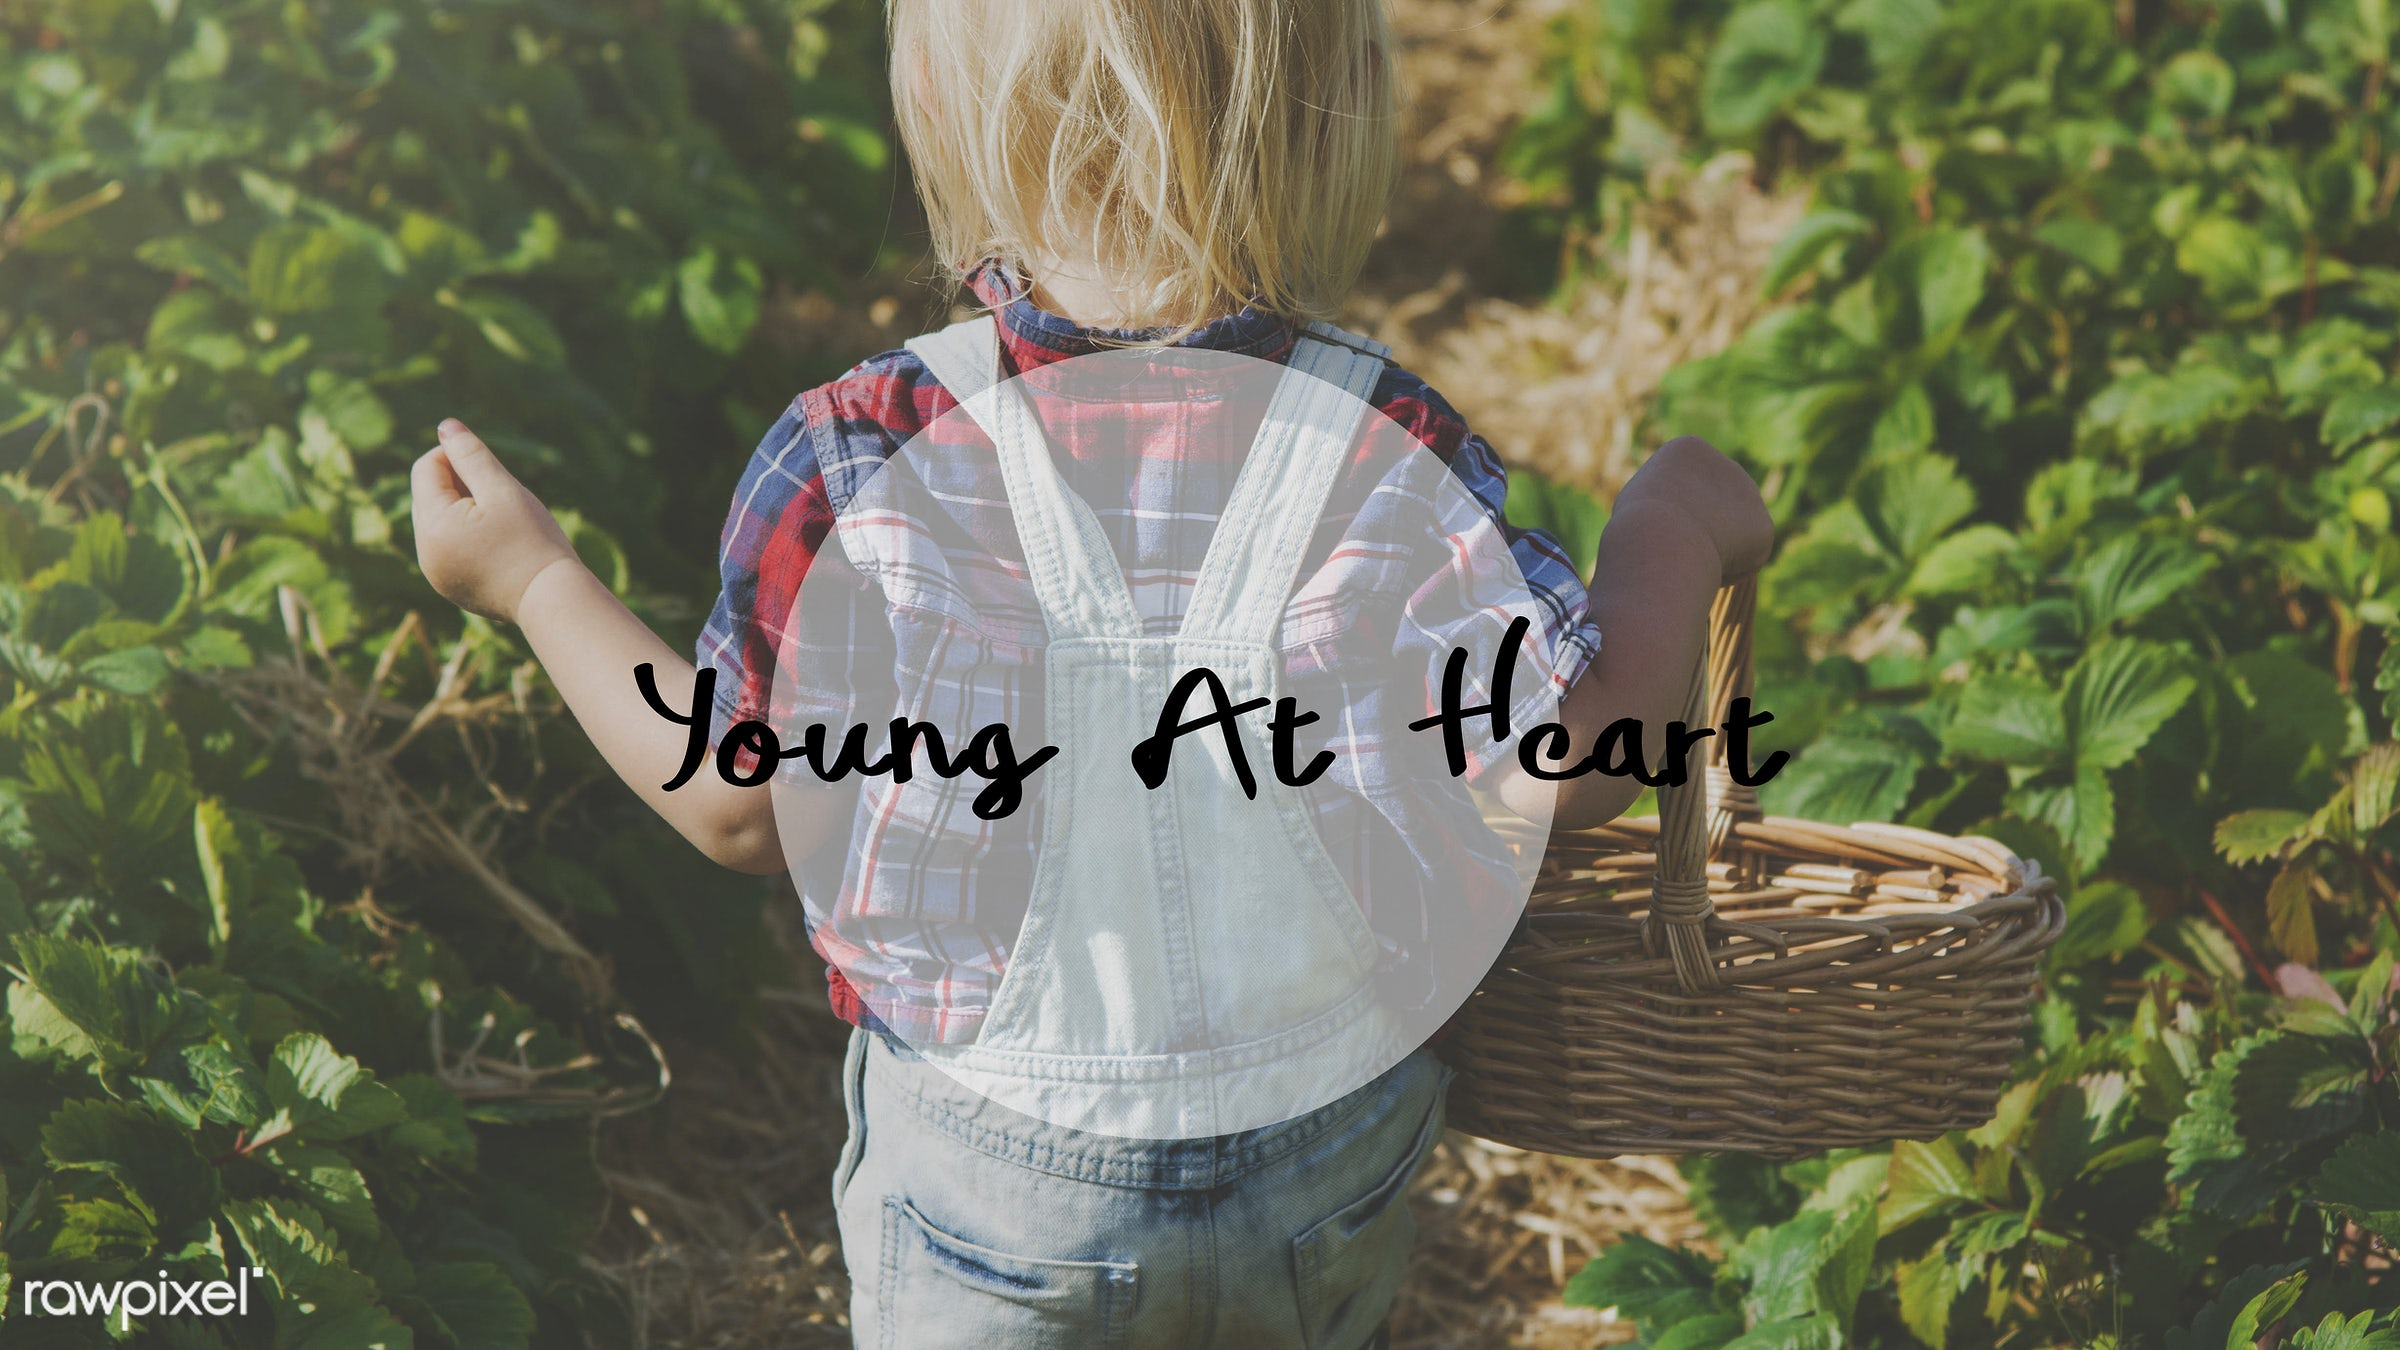 appreciate, basket, blonde, boy, caucasian, childhood, delightful, dungarees, enjoy, enjoy life, enjoyment, farm, fruit, fun...